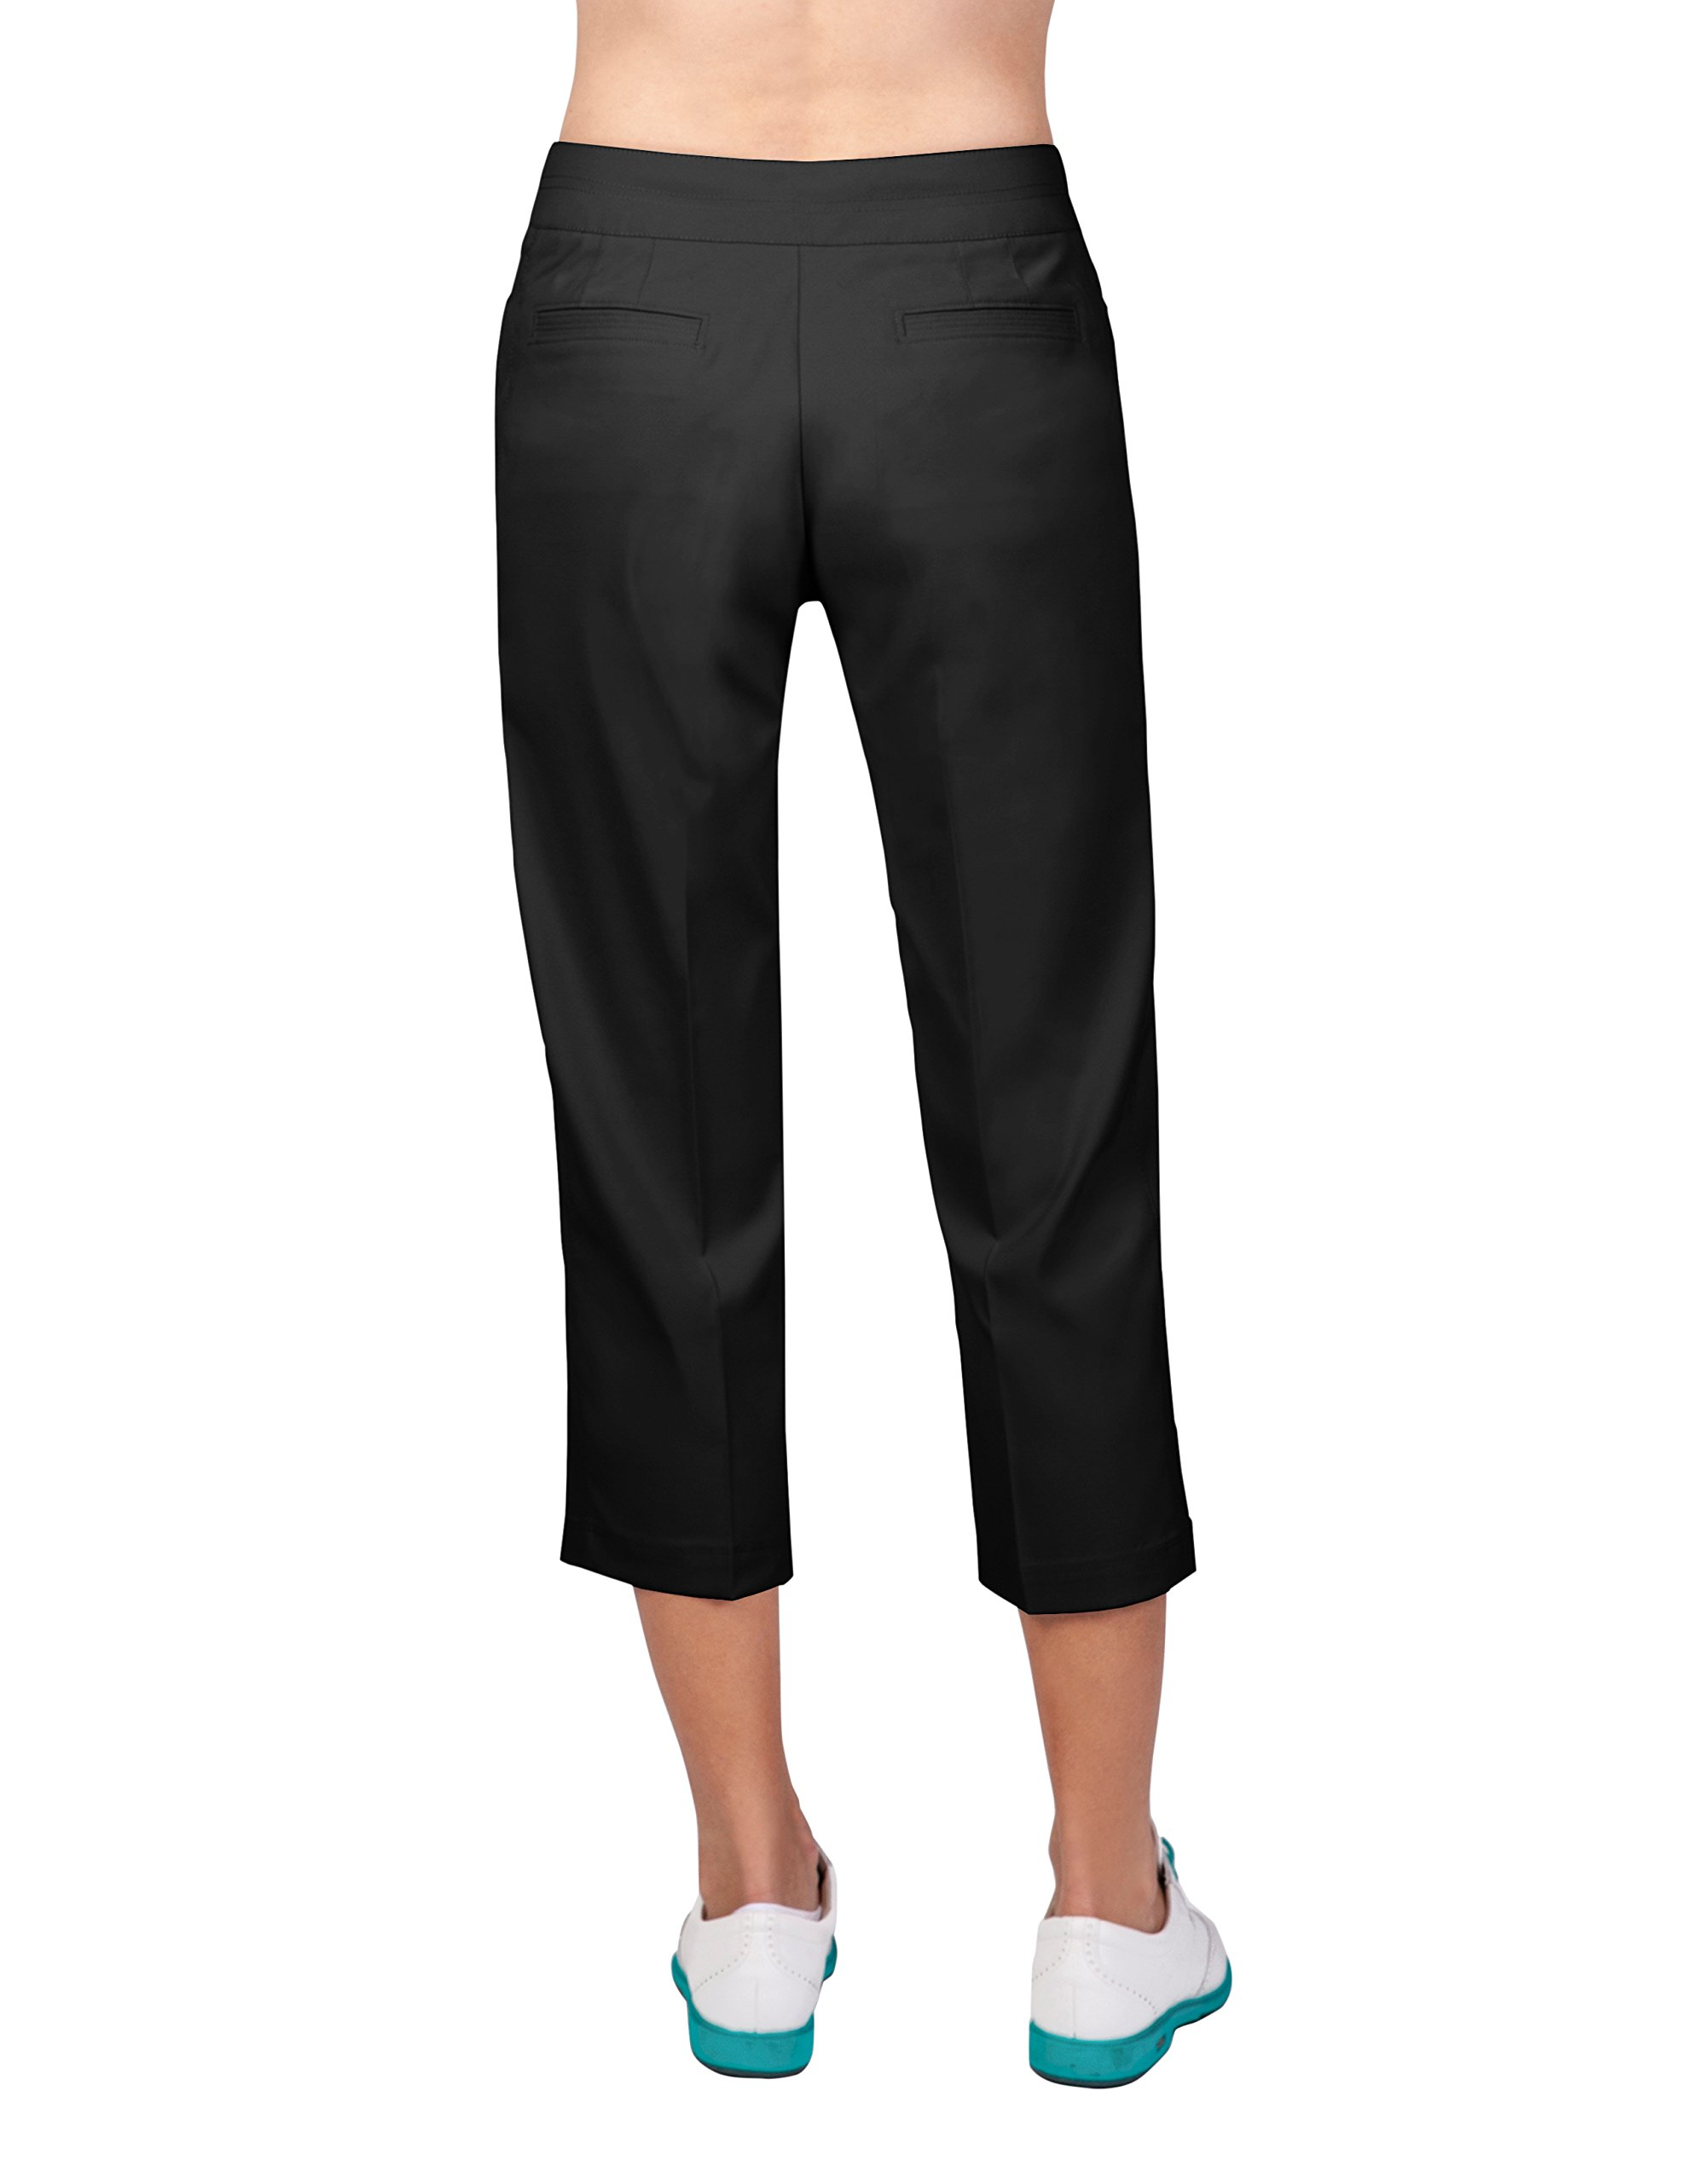 Tail Activewear Women's Classic Capri 6 Black by Tail (Image #2)